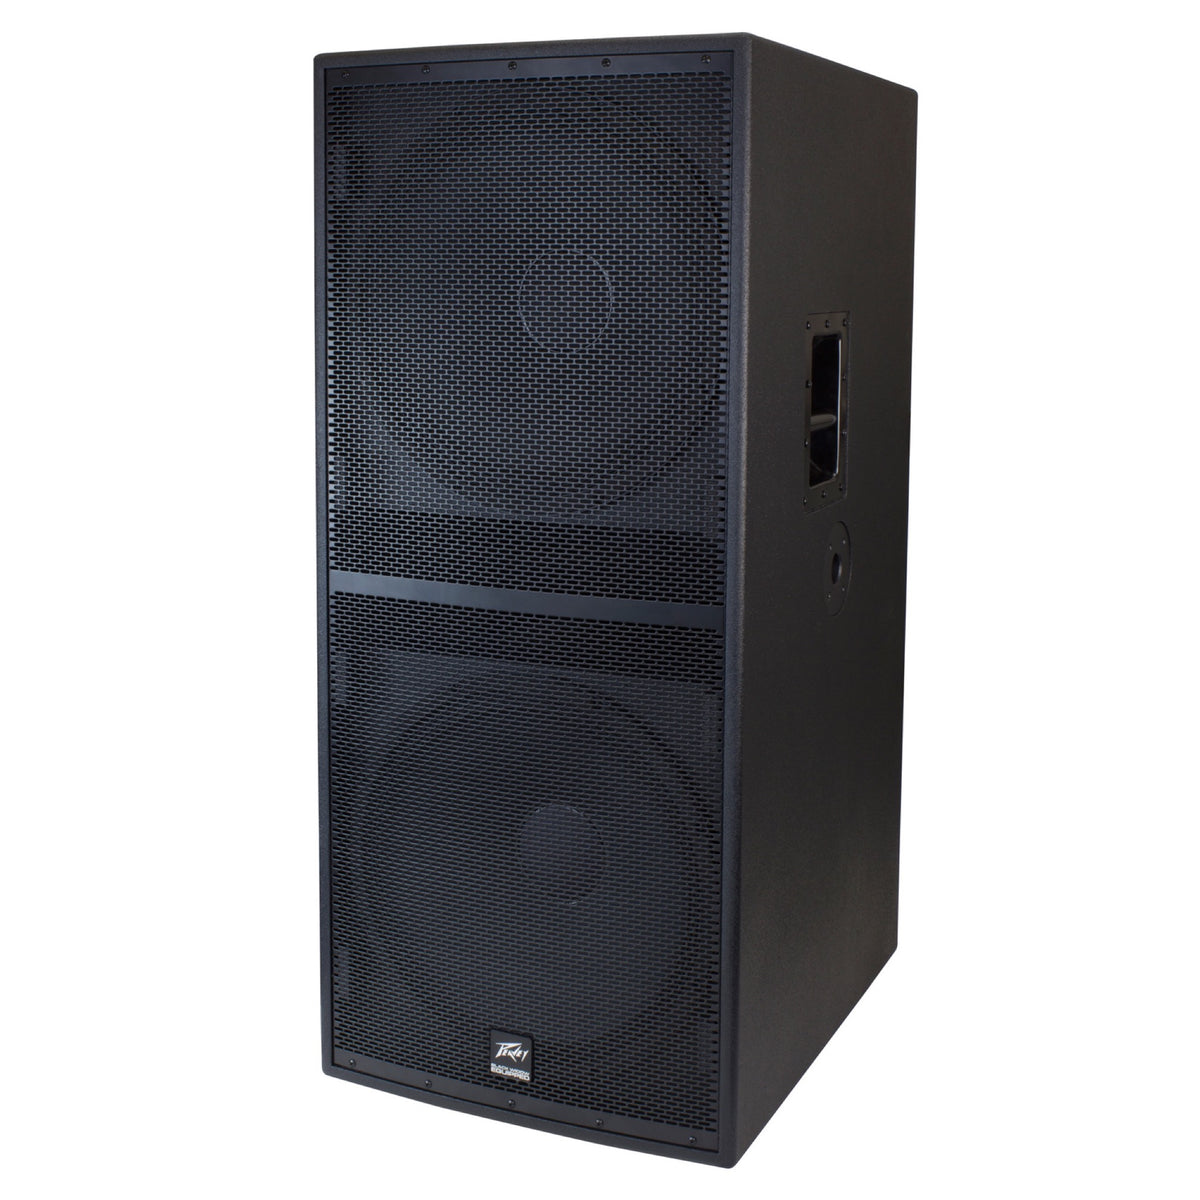 Peavey SP218 II Passive, Unpowered Subwoofer (2400 Watts, 2x18 Inch)